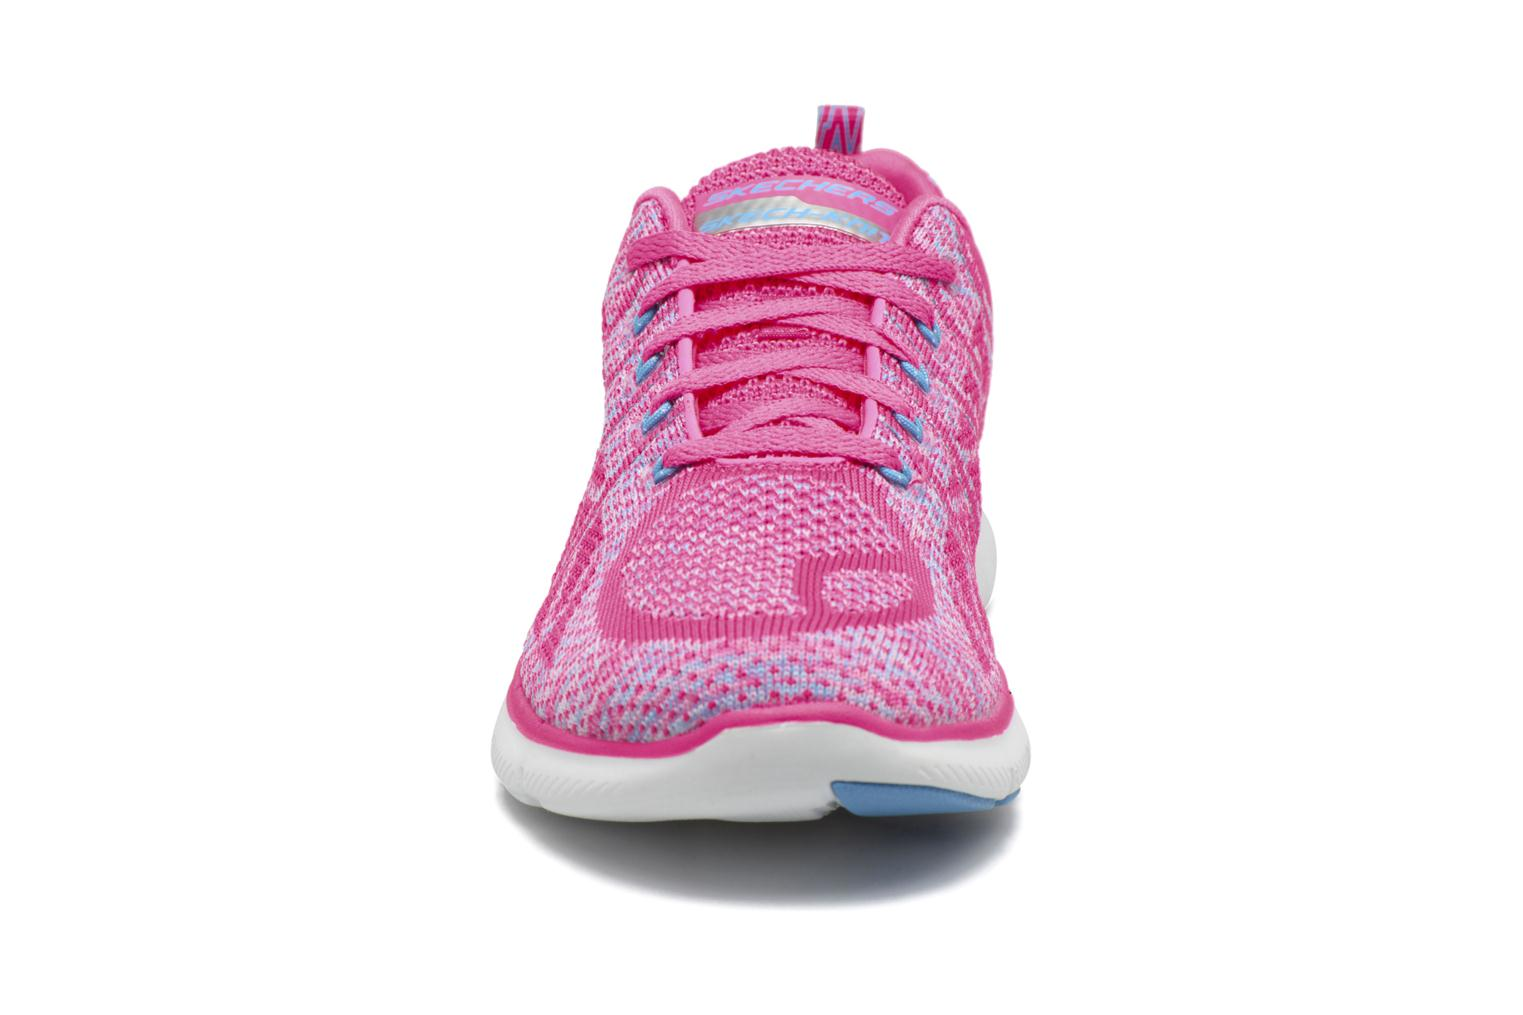 Zapatillas de deporte Skechers Flex Appeal 2.0 New Gem Rosa vista del modelo